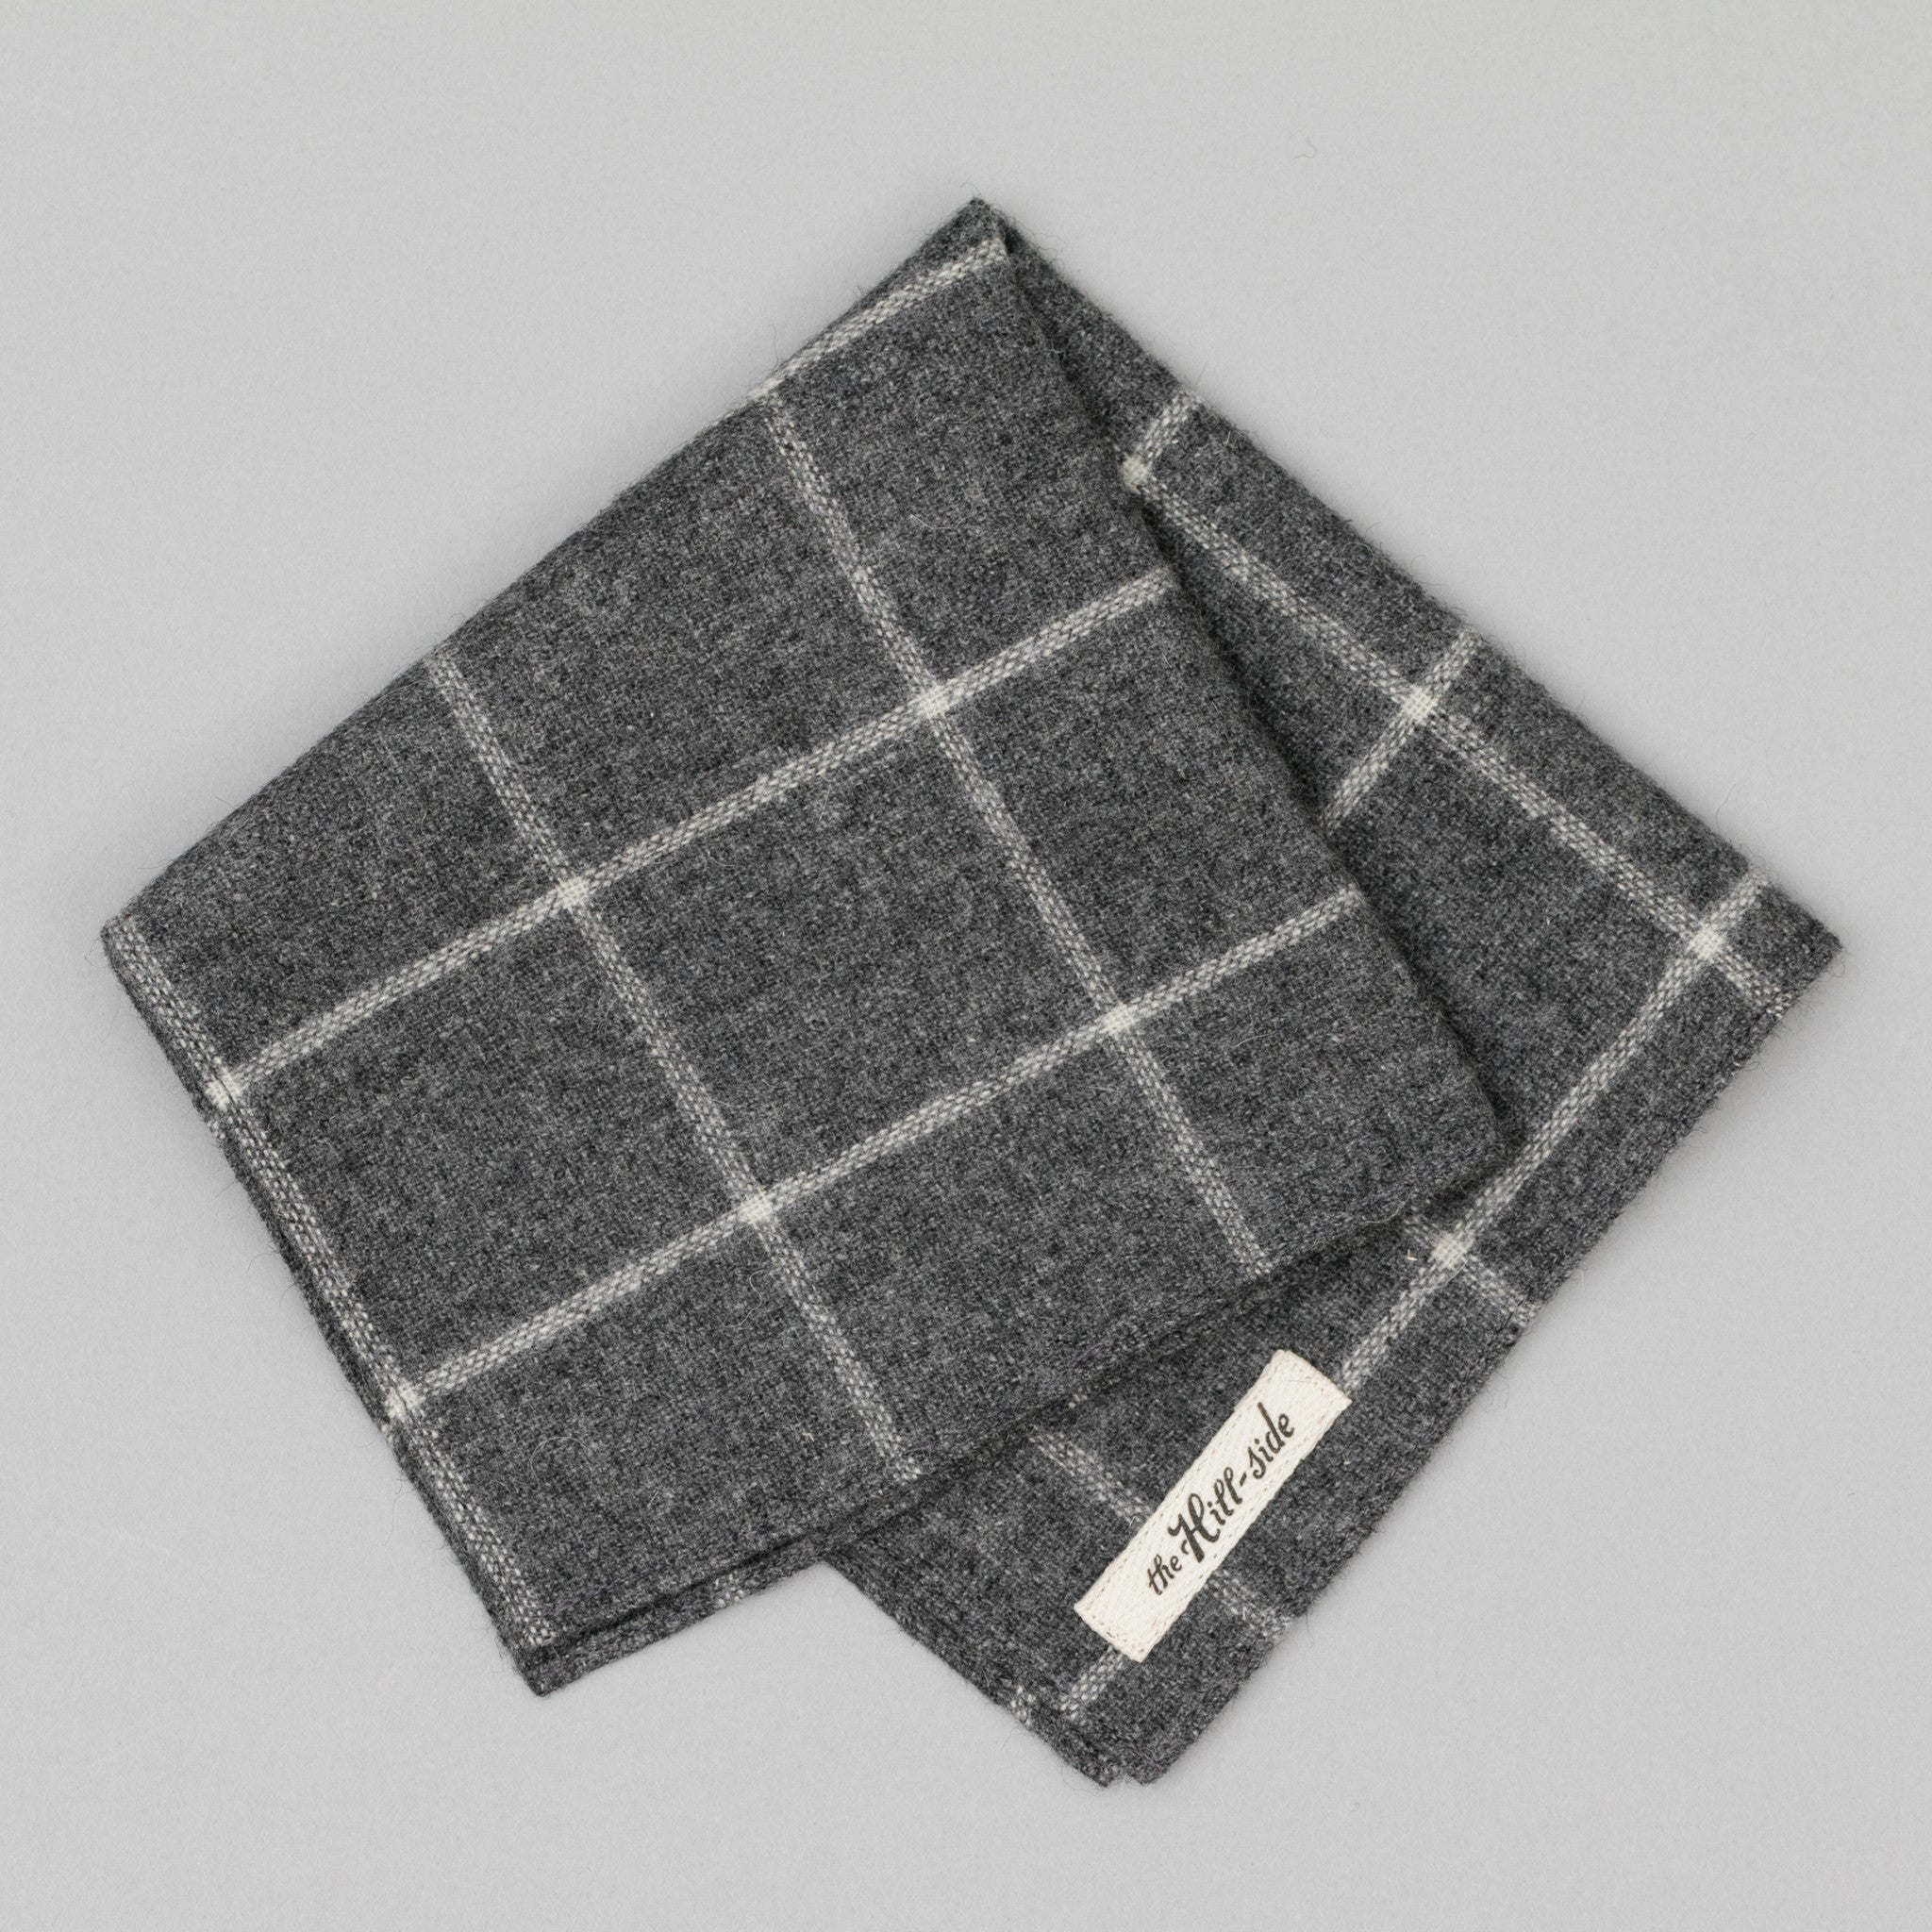 The Hill-Side - Pocket Square, Wool Blend Windowpane Check, Grey & White - PS1-383